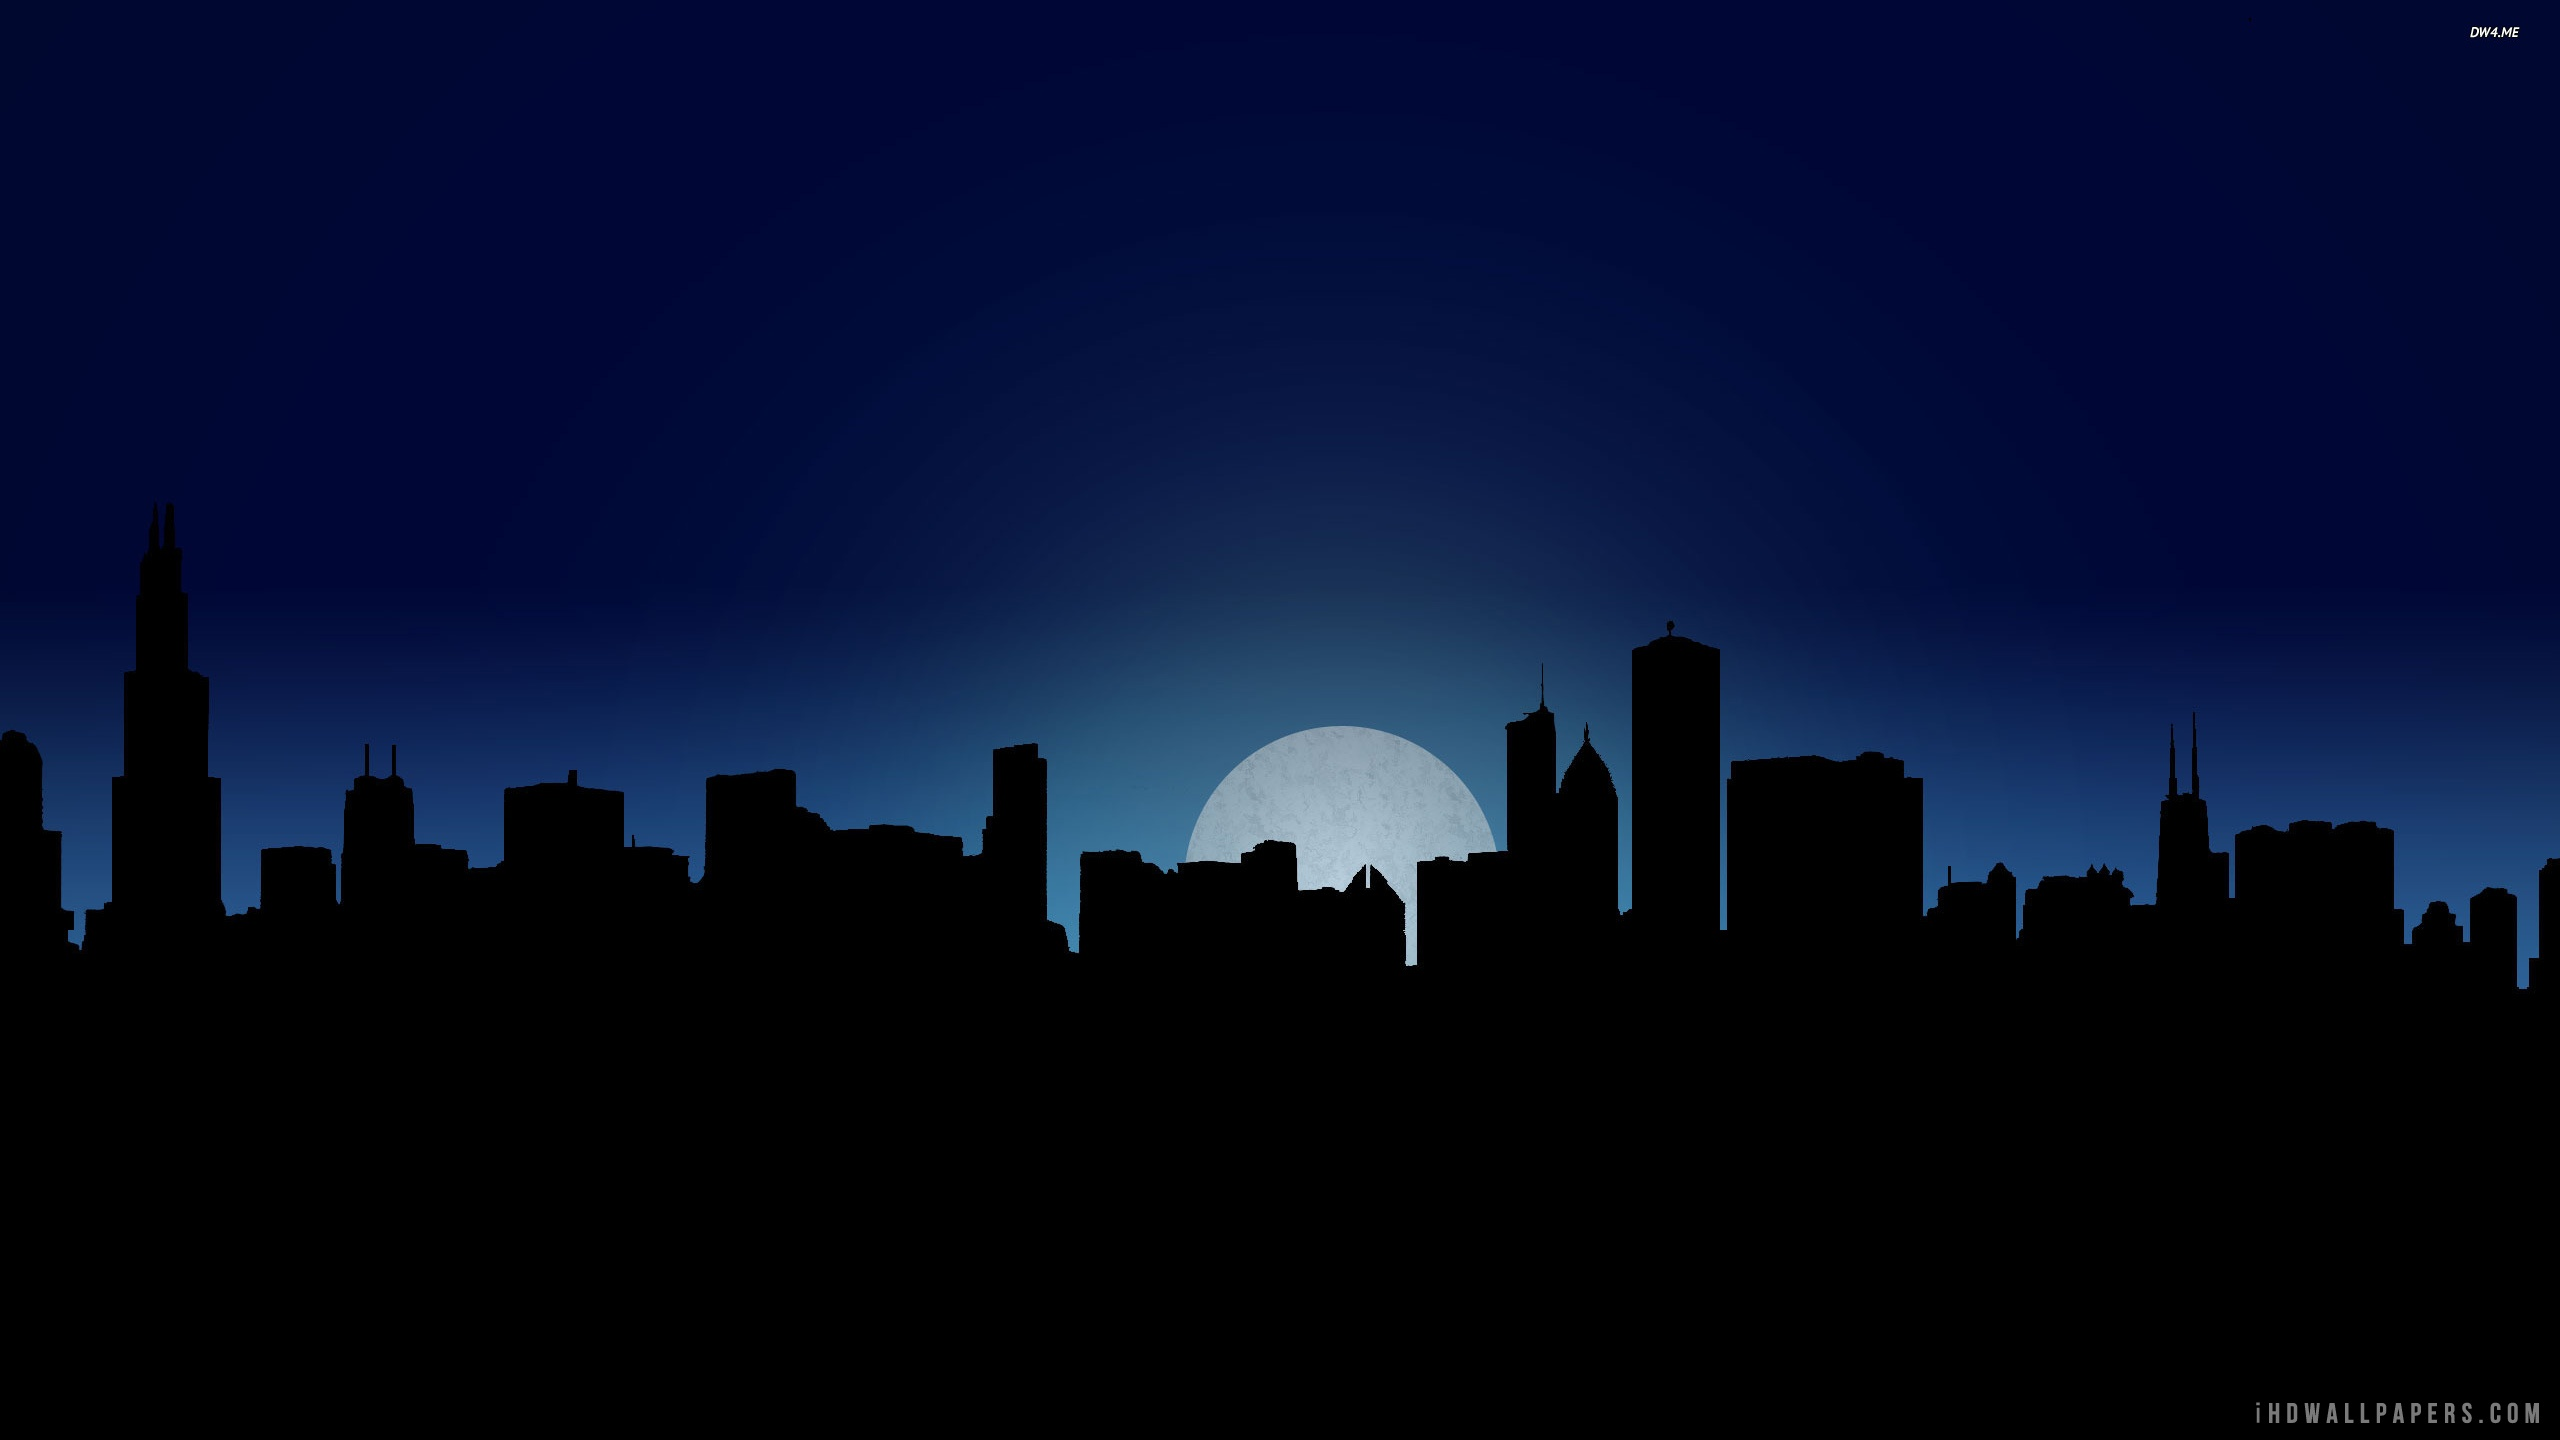 Chicago Skyline At Night Time HD Wallpaper   iHD Wallpapers 2560x1440